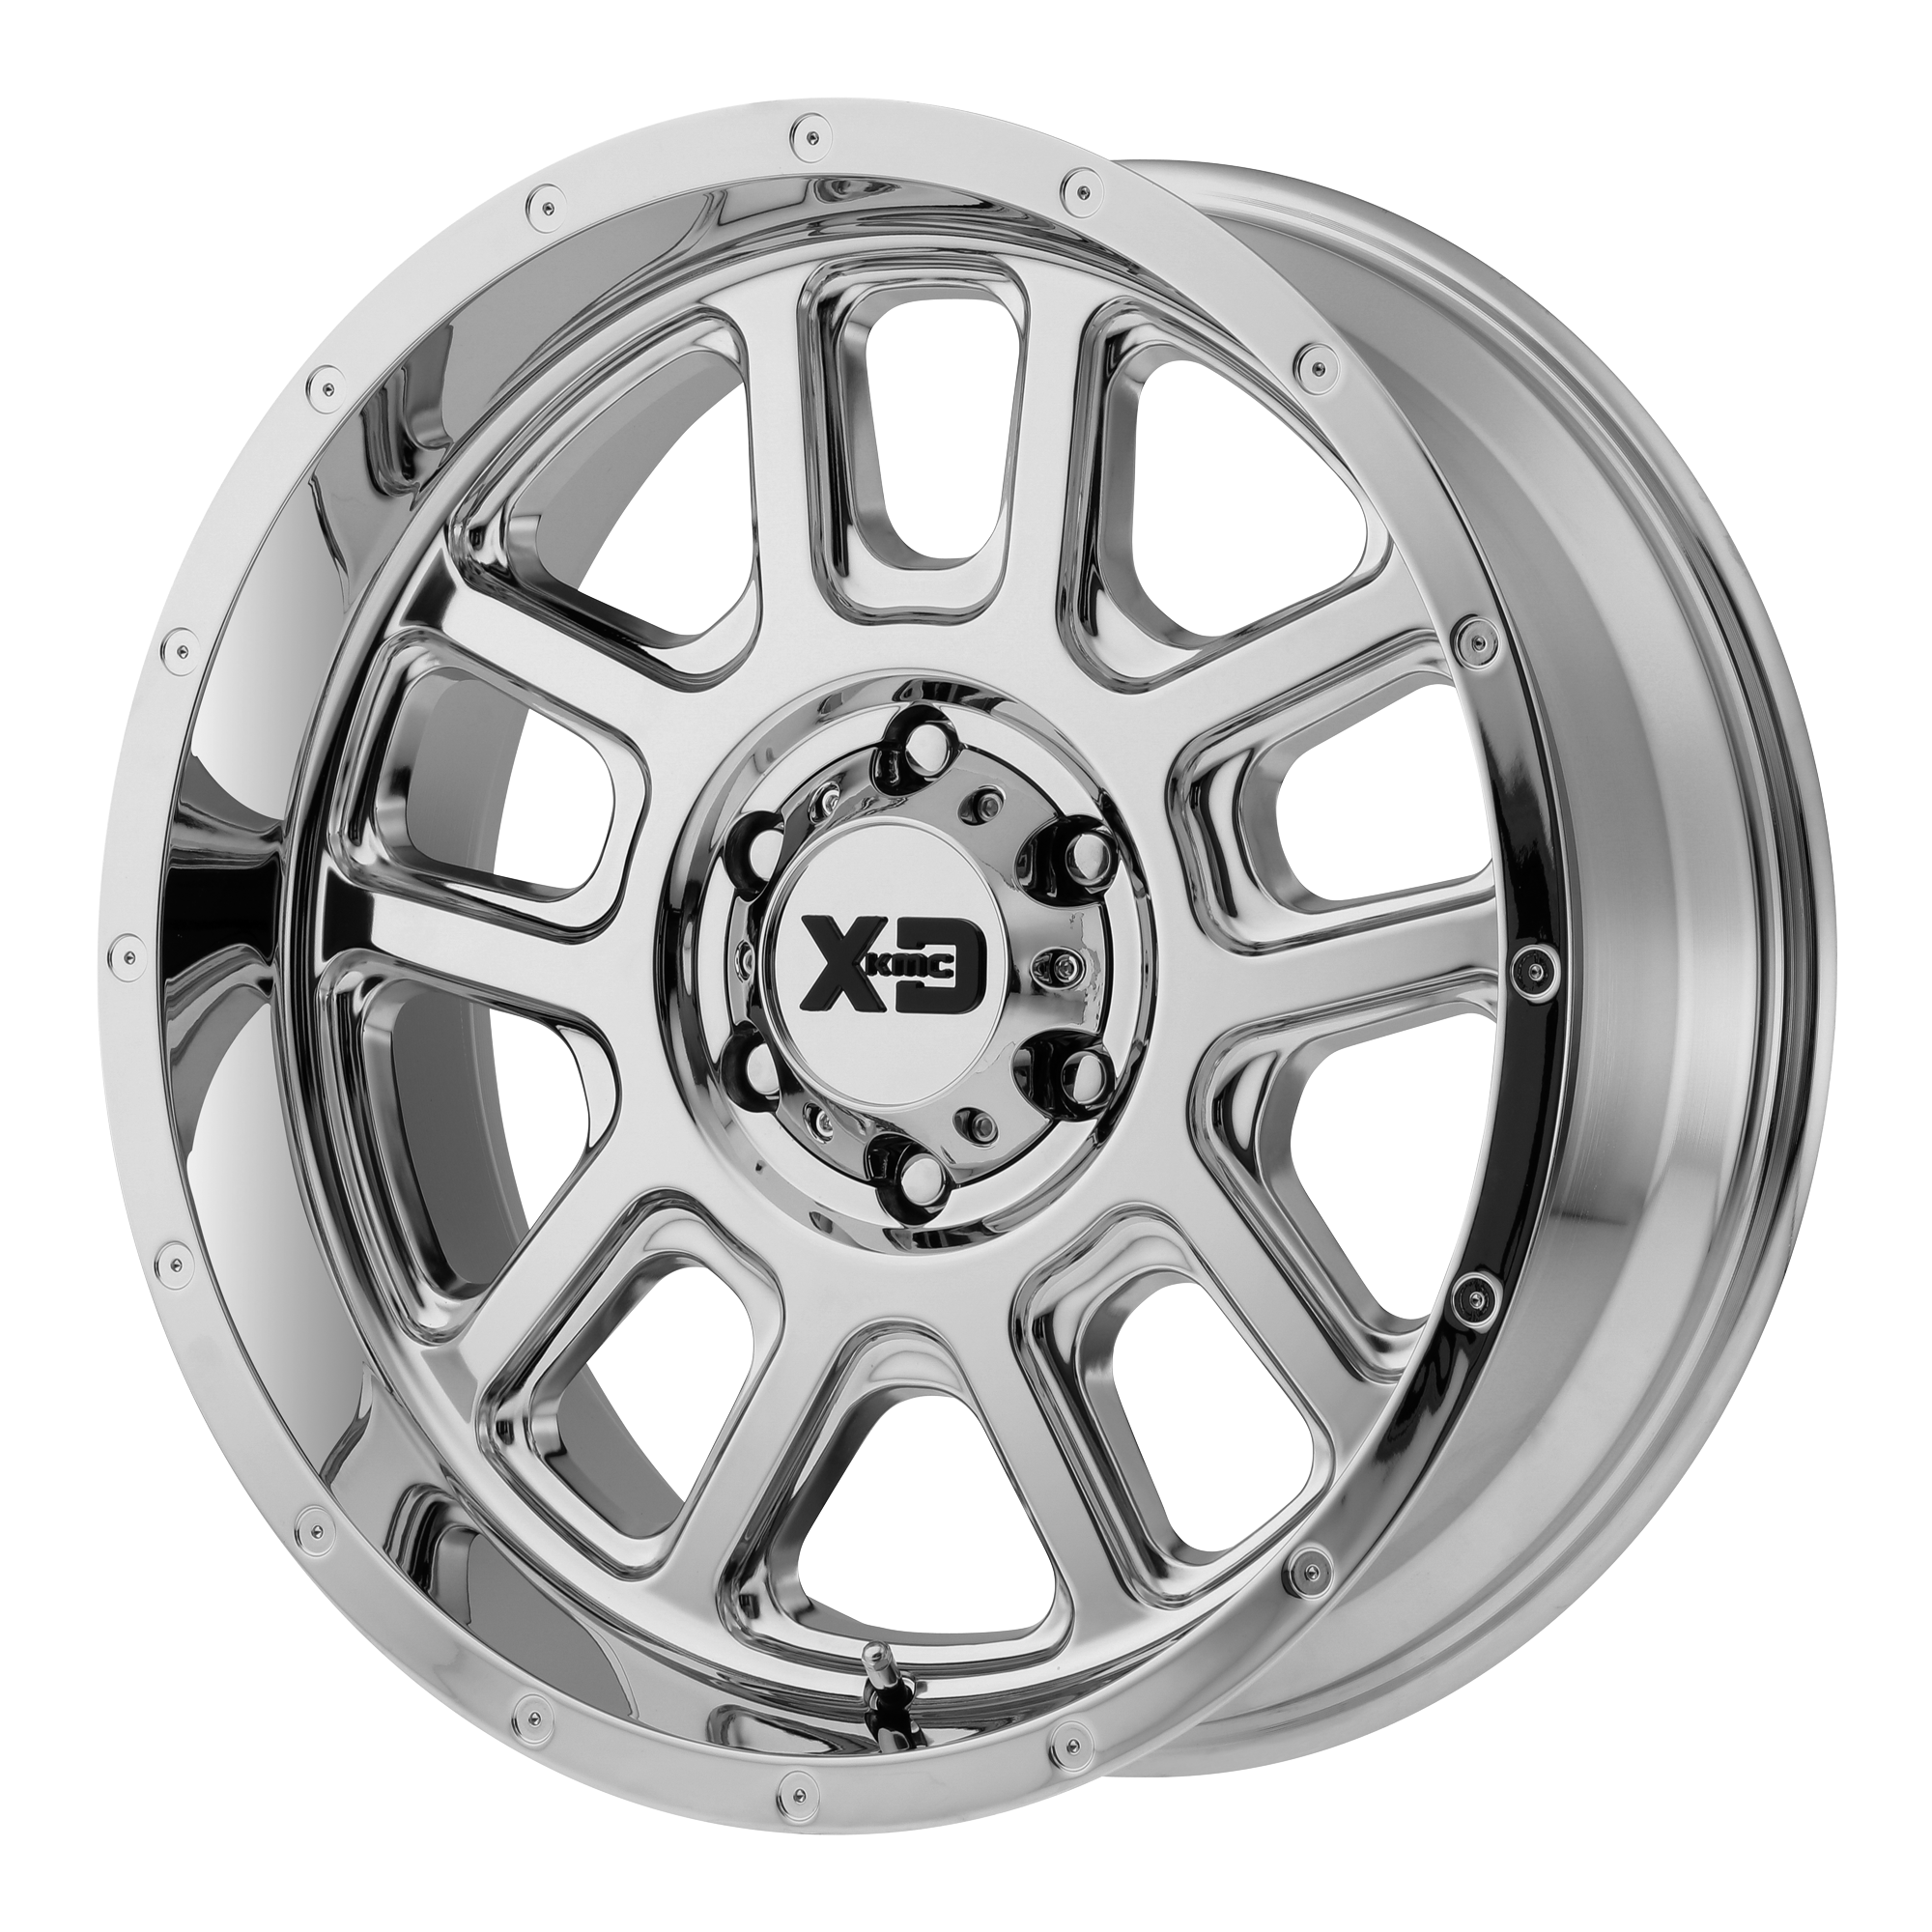 XD SERIES BY KMC WHEELS XD828 DELTA Chrome Plated